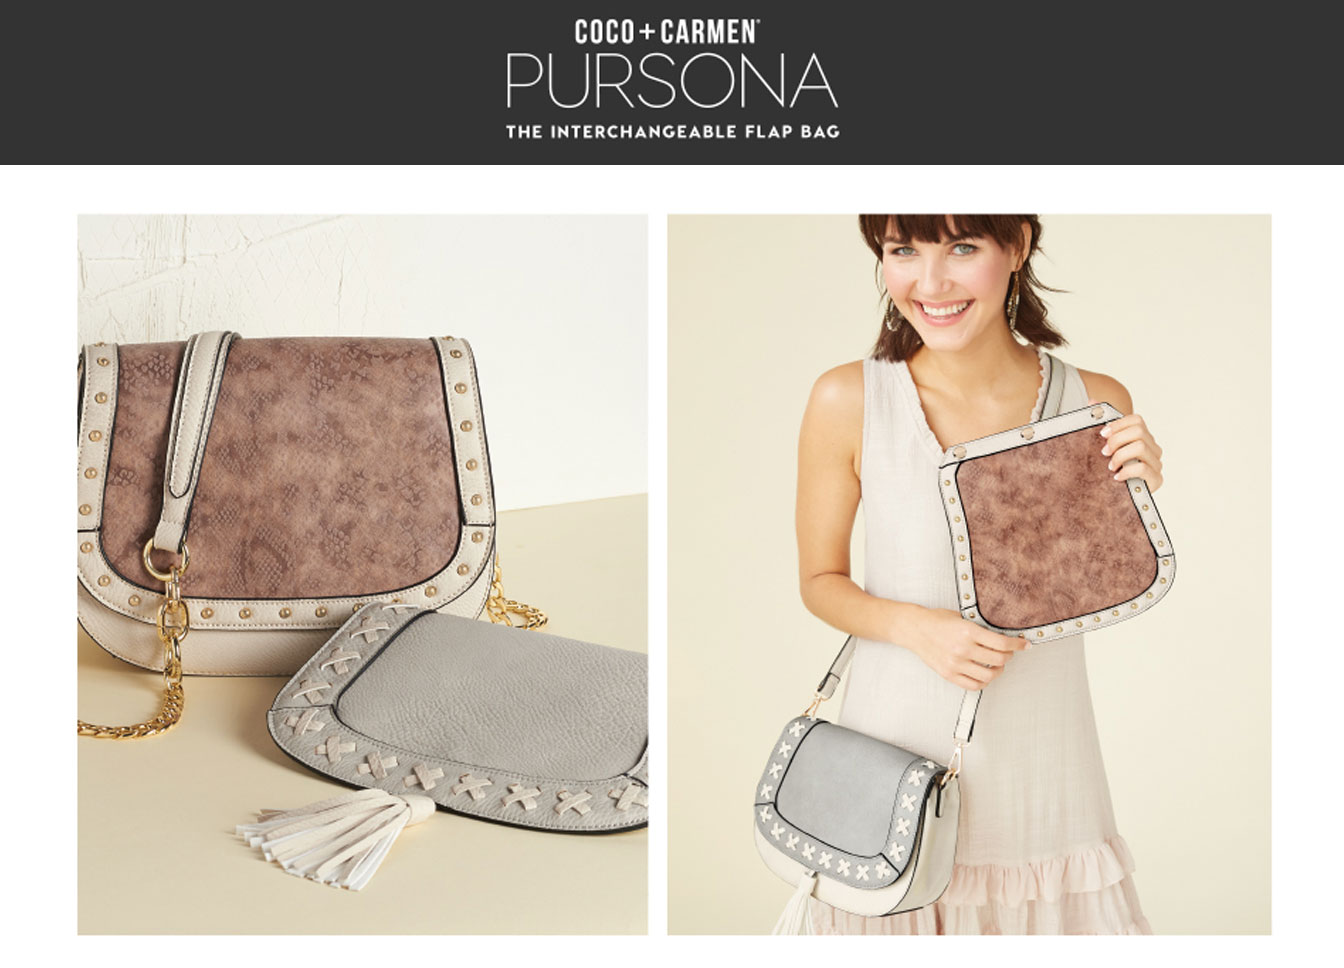 Pursona Interchangeable Flap HandBag